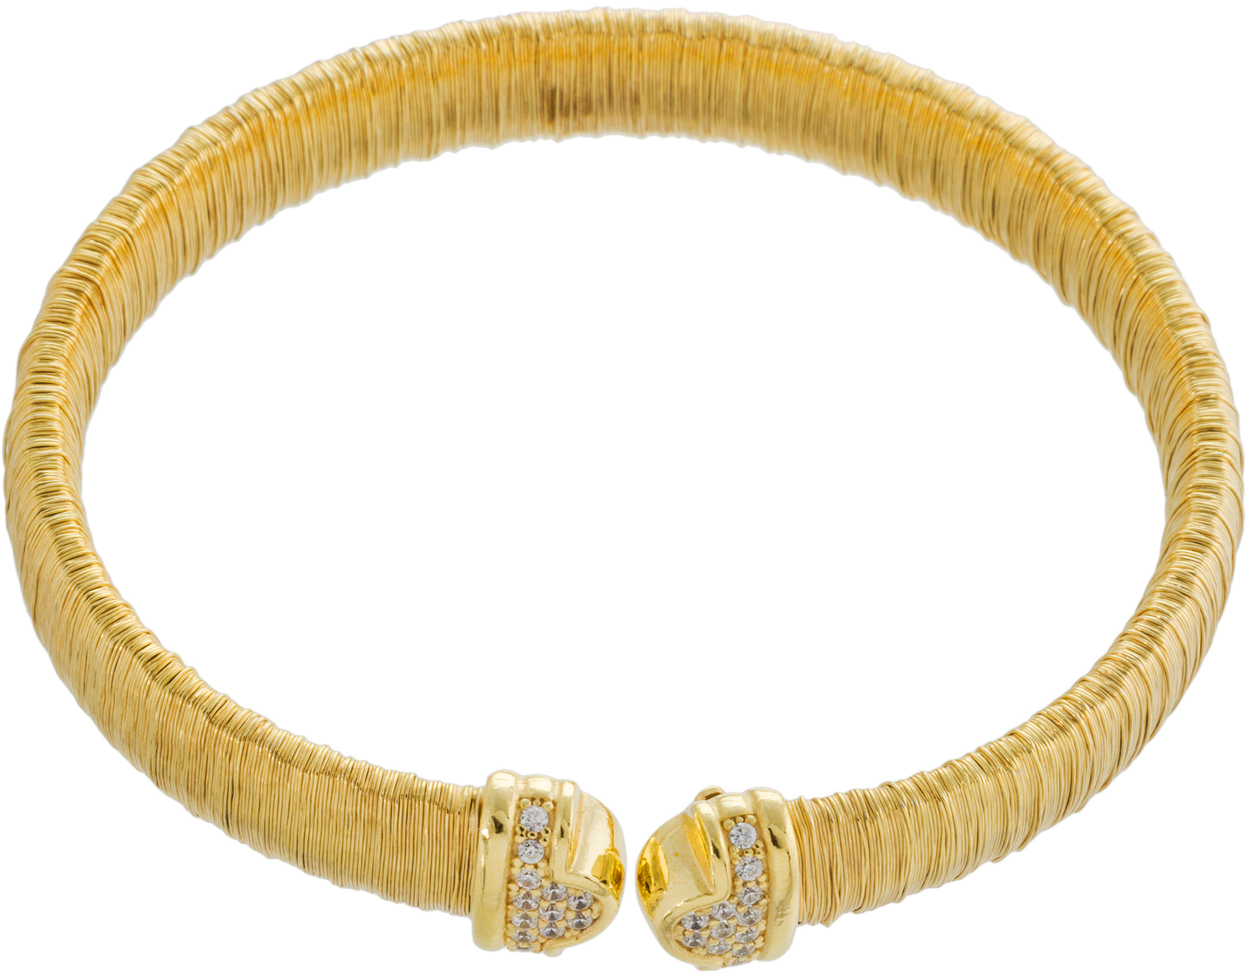 Athra Luxe - Gold Plated Sterling Silver Textured Crystal Accent Cuff Bracelet